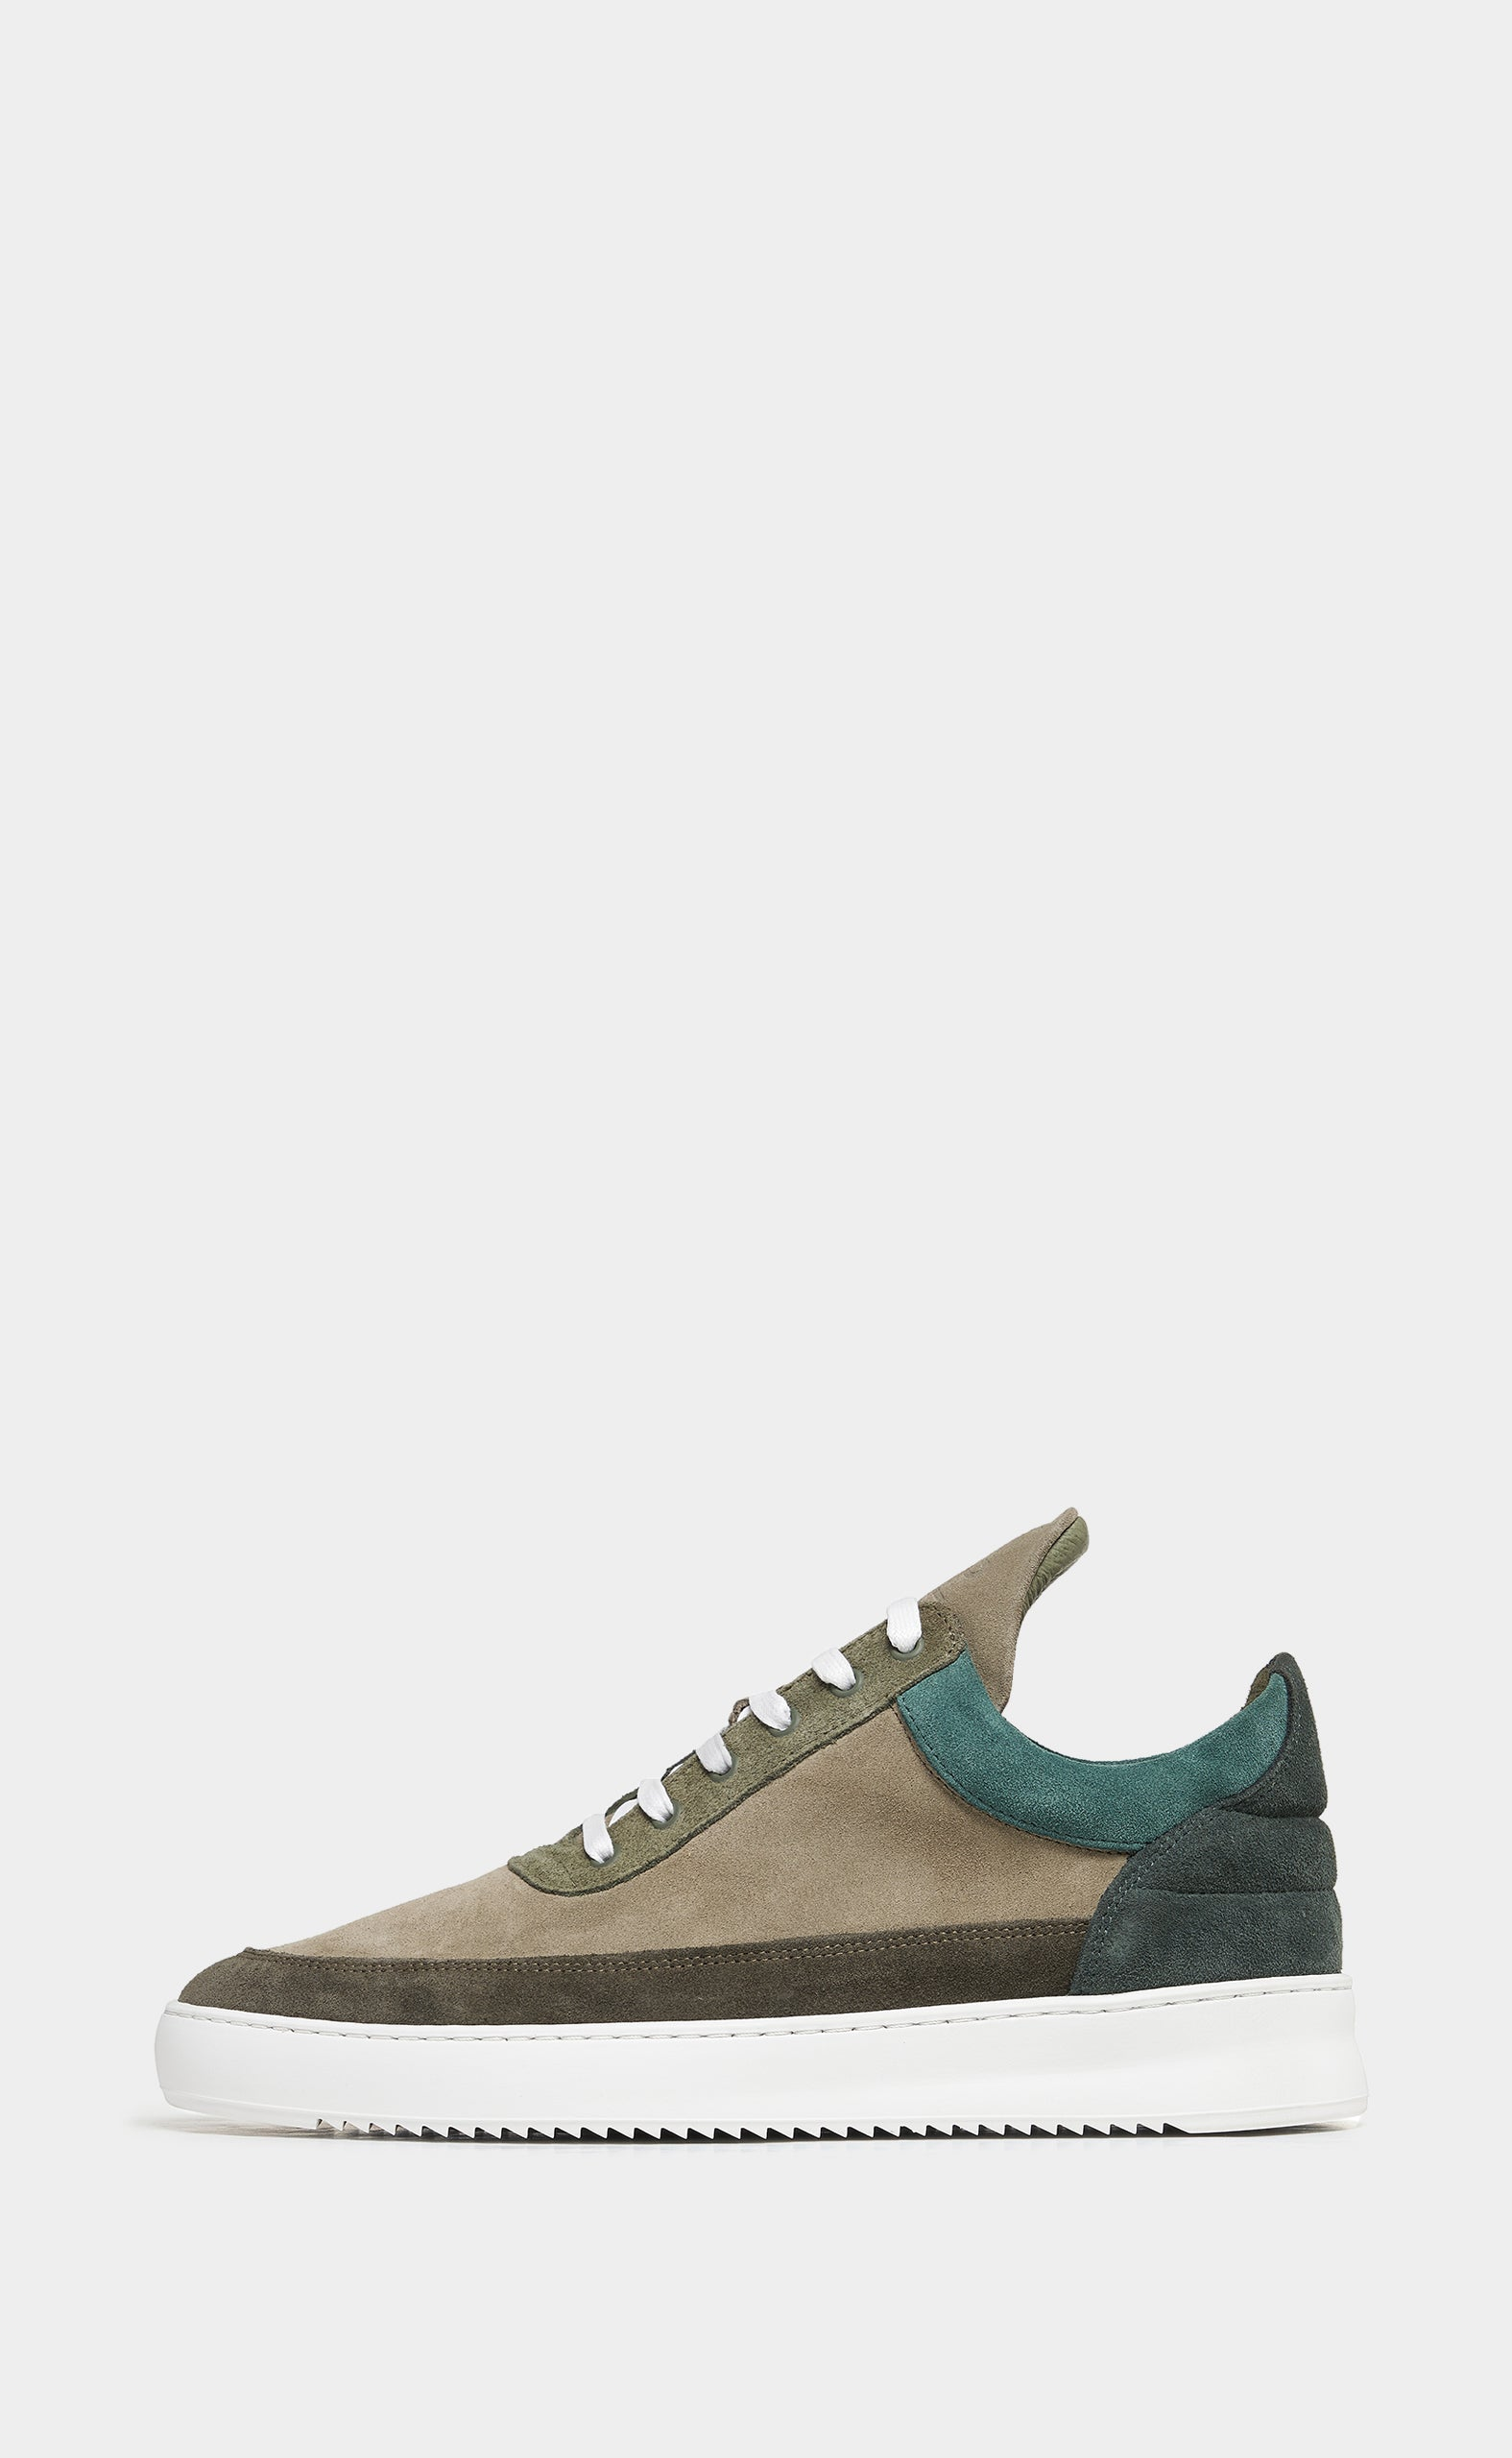 Low Top Ripple Multi Army Green